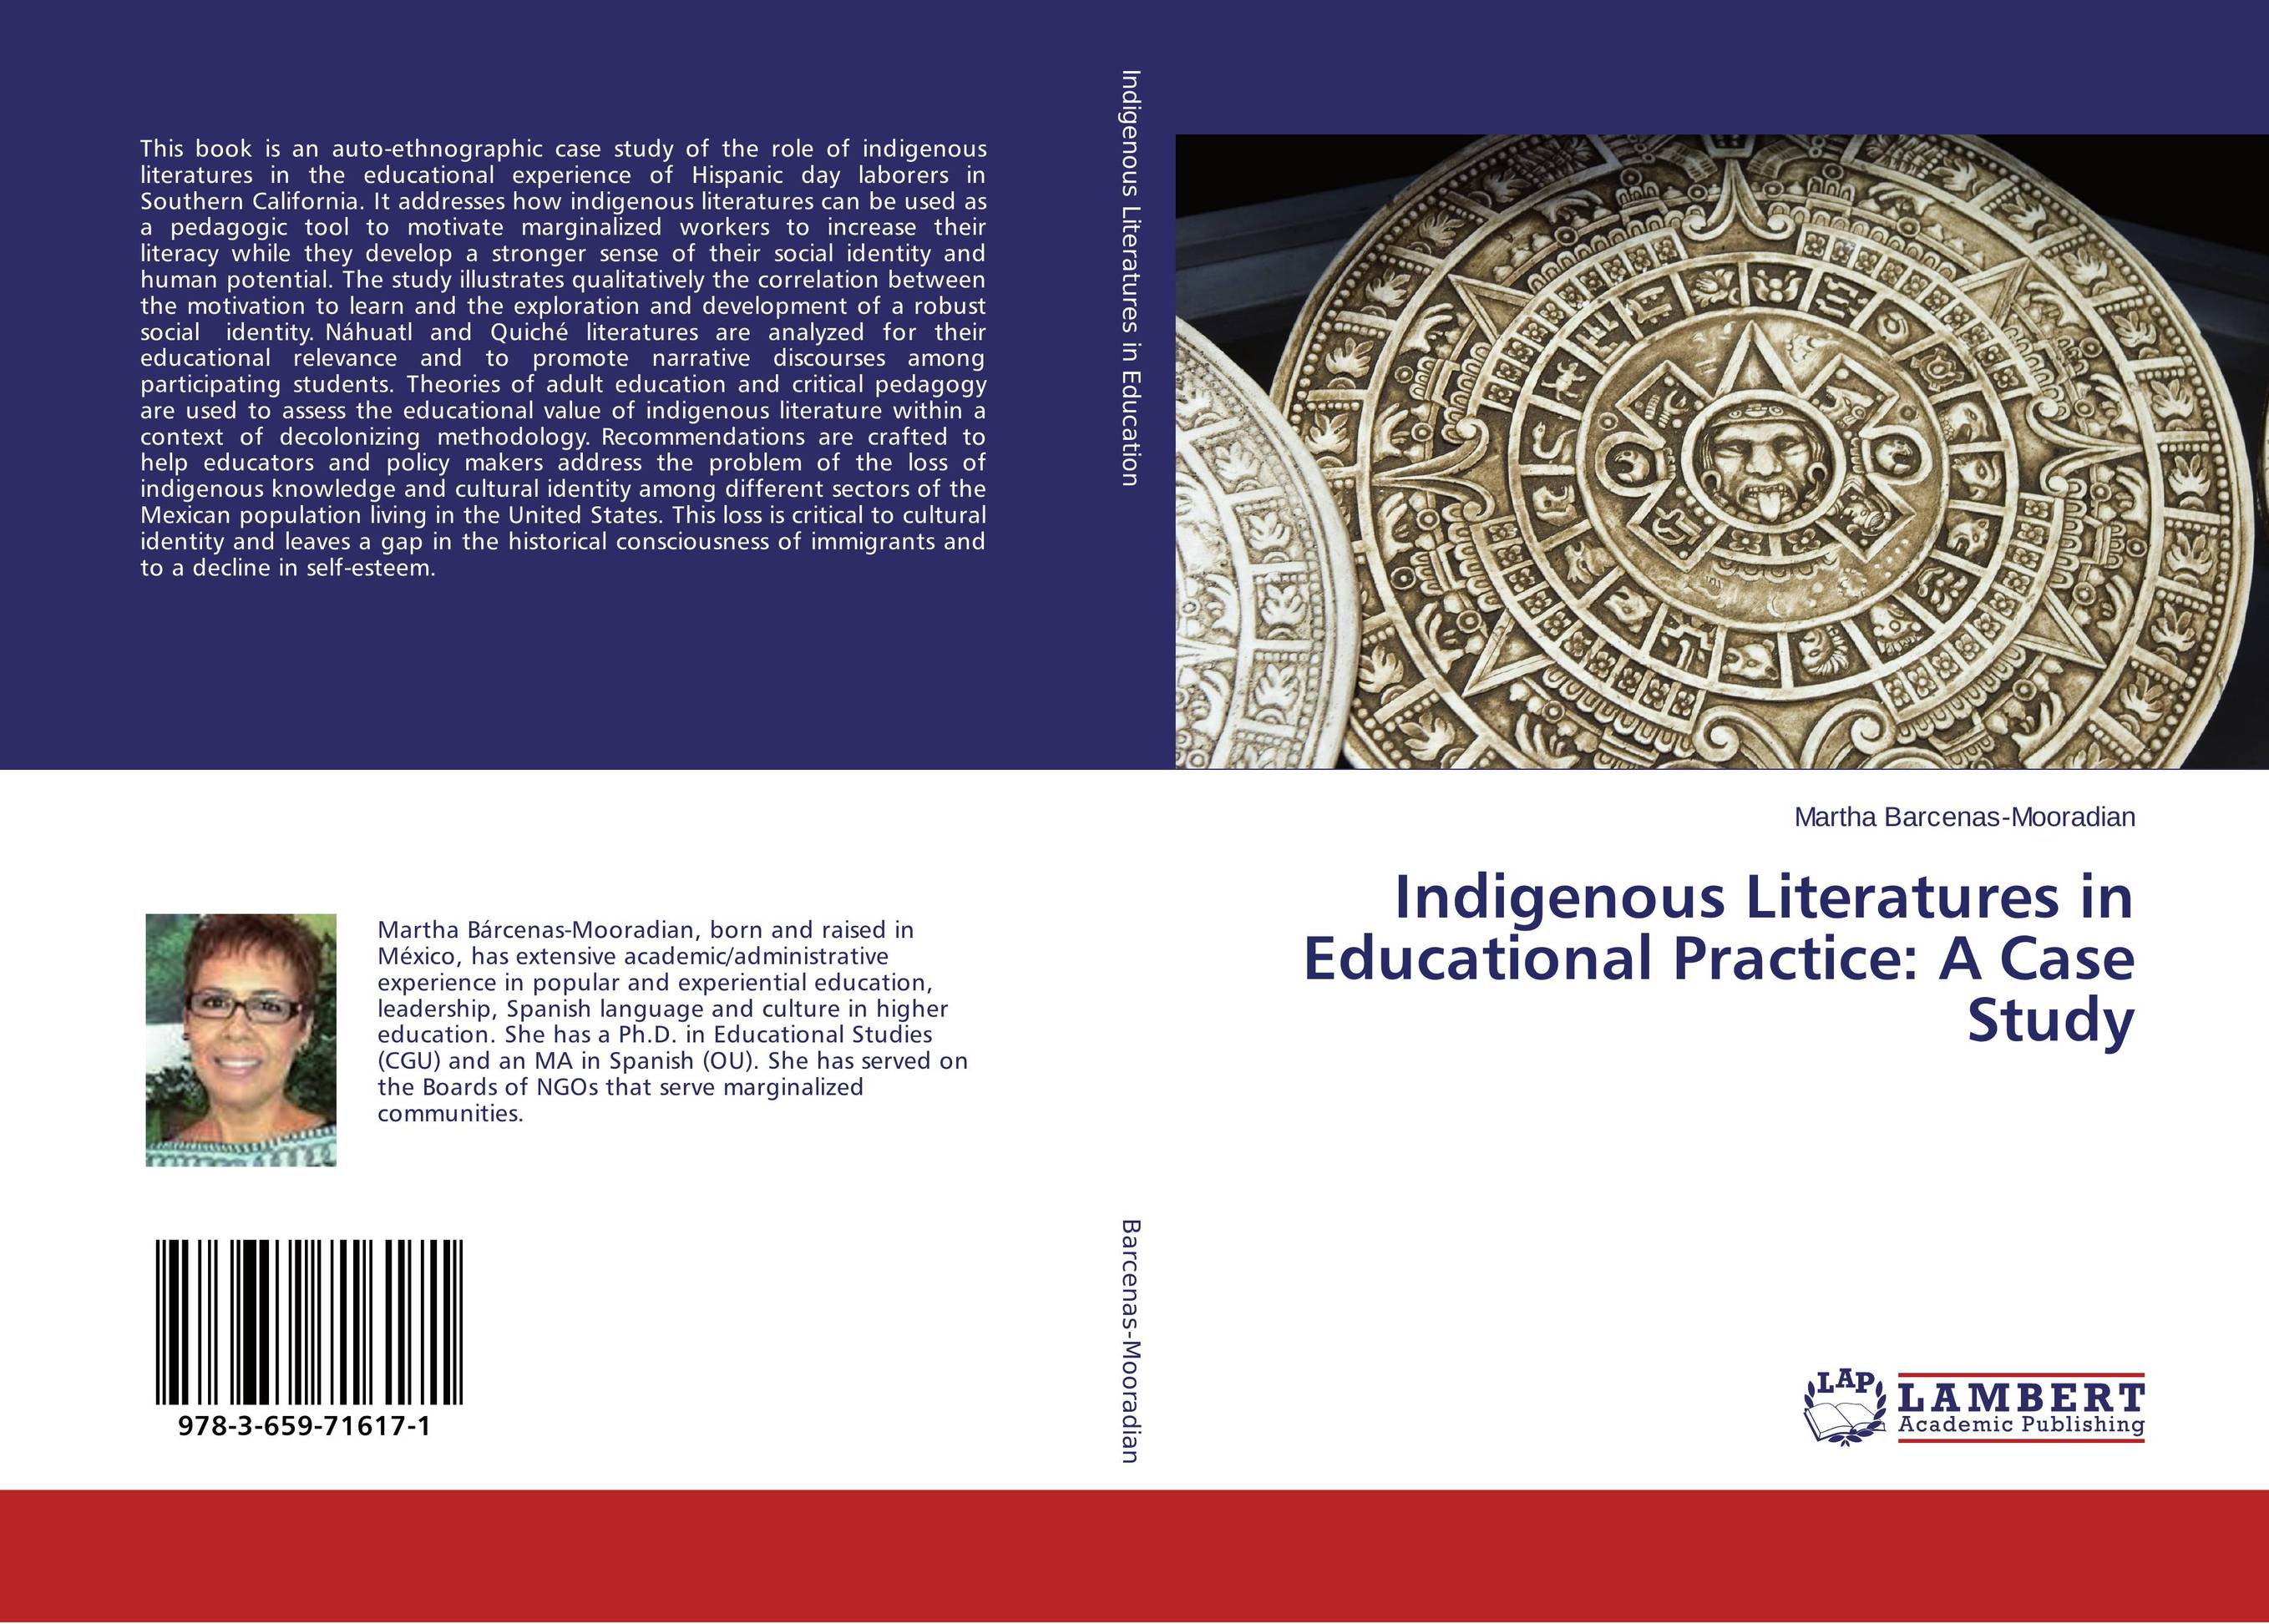 Indigenous Literatures in Educational Practice: A Case Study